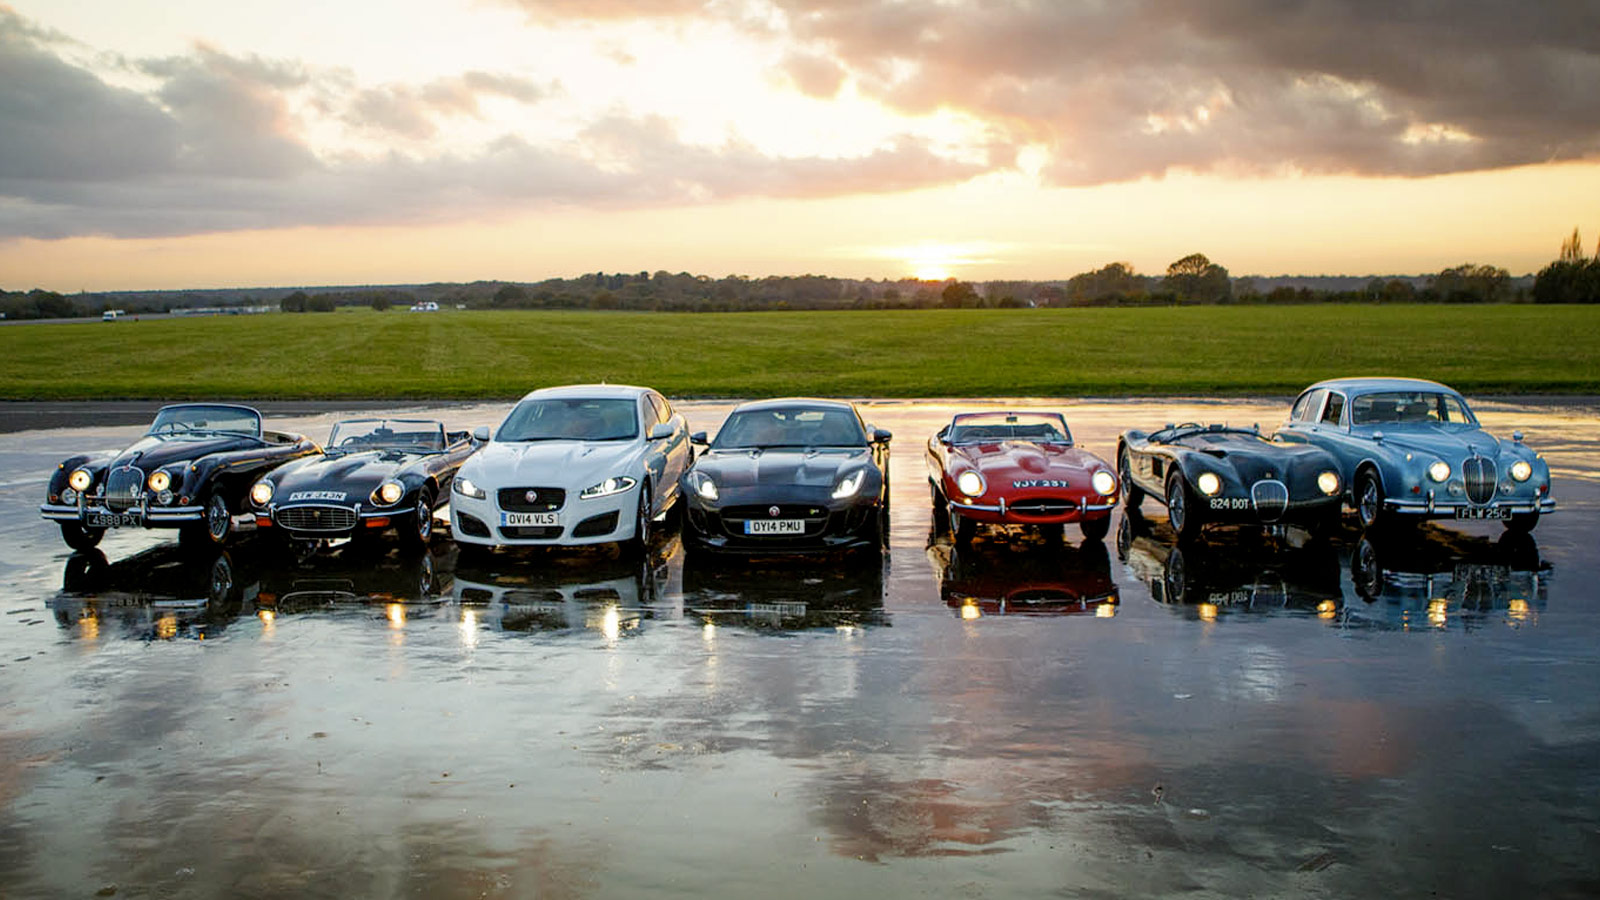 7 Jaguar's lines up in a row with headlights on.